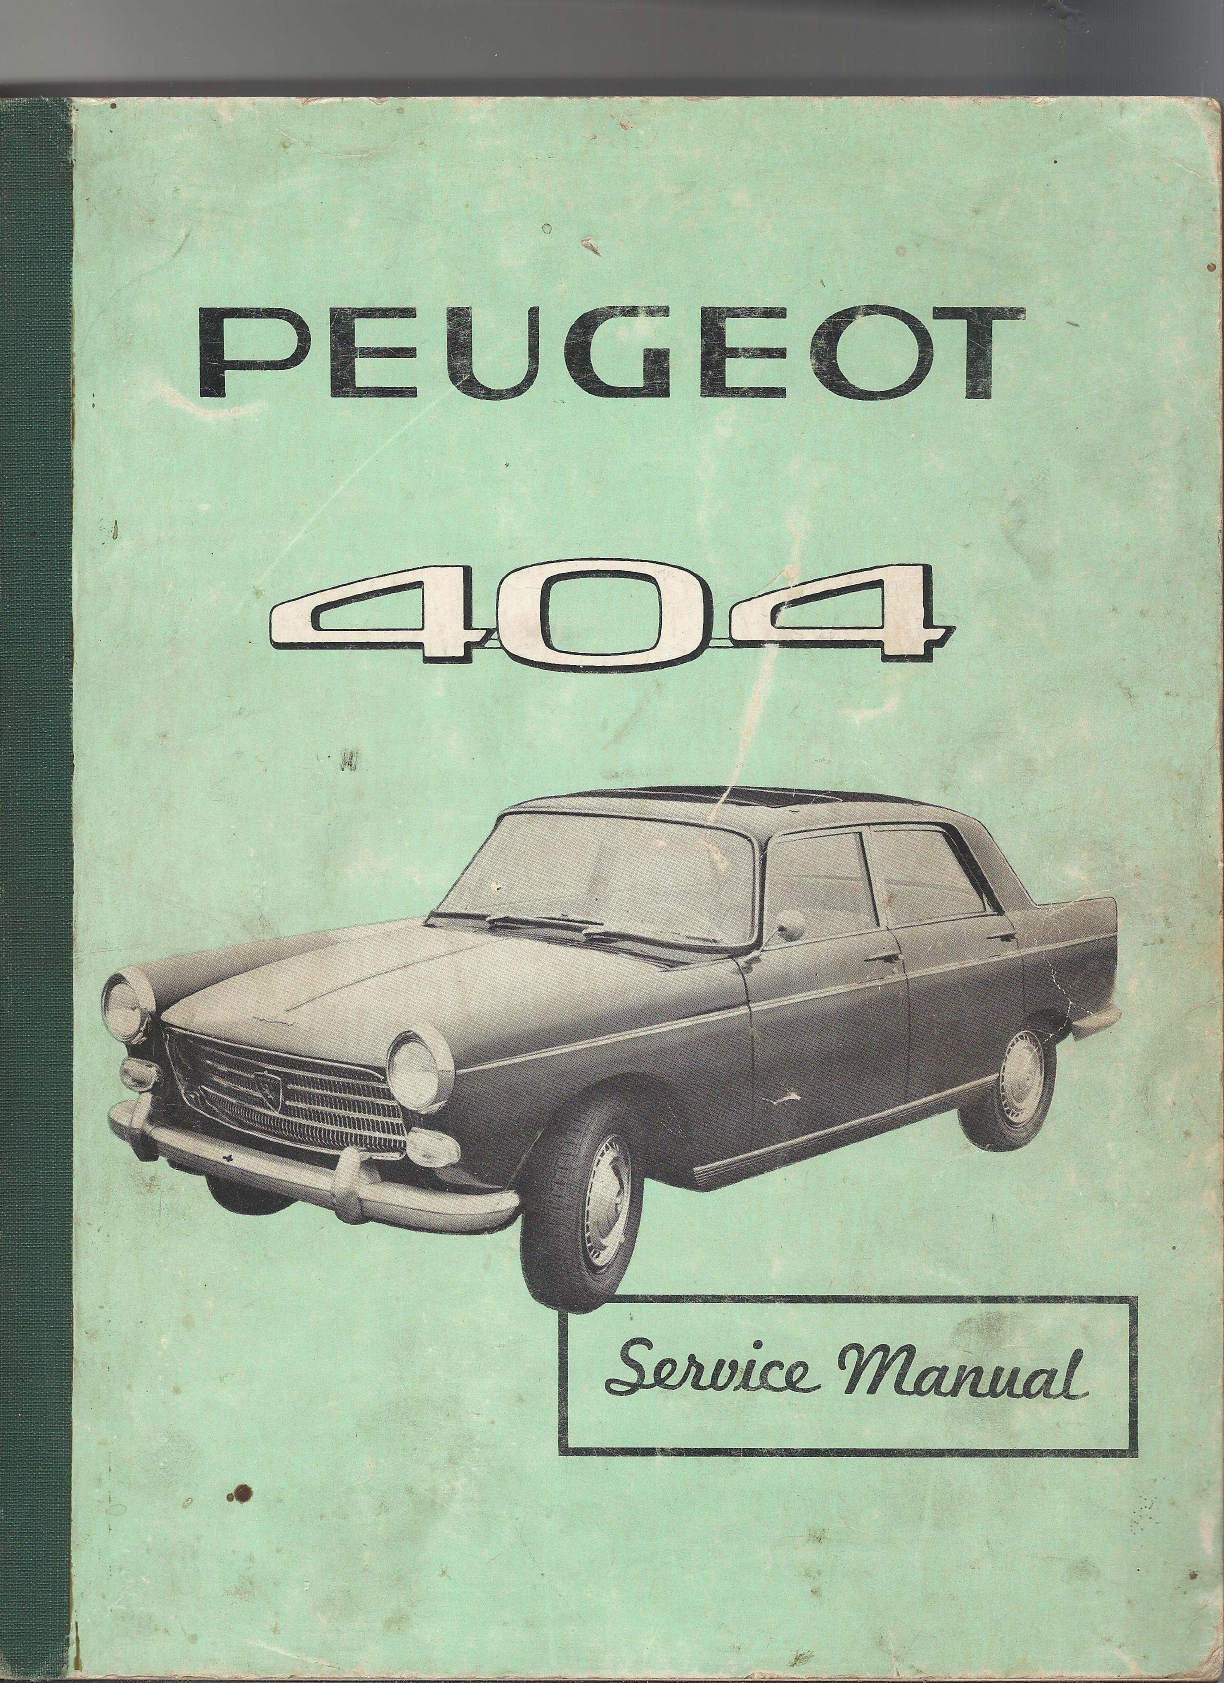 See our other Peugeot 404 Manuals: Peugeot 404 1962 Workshop Manual